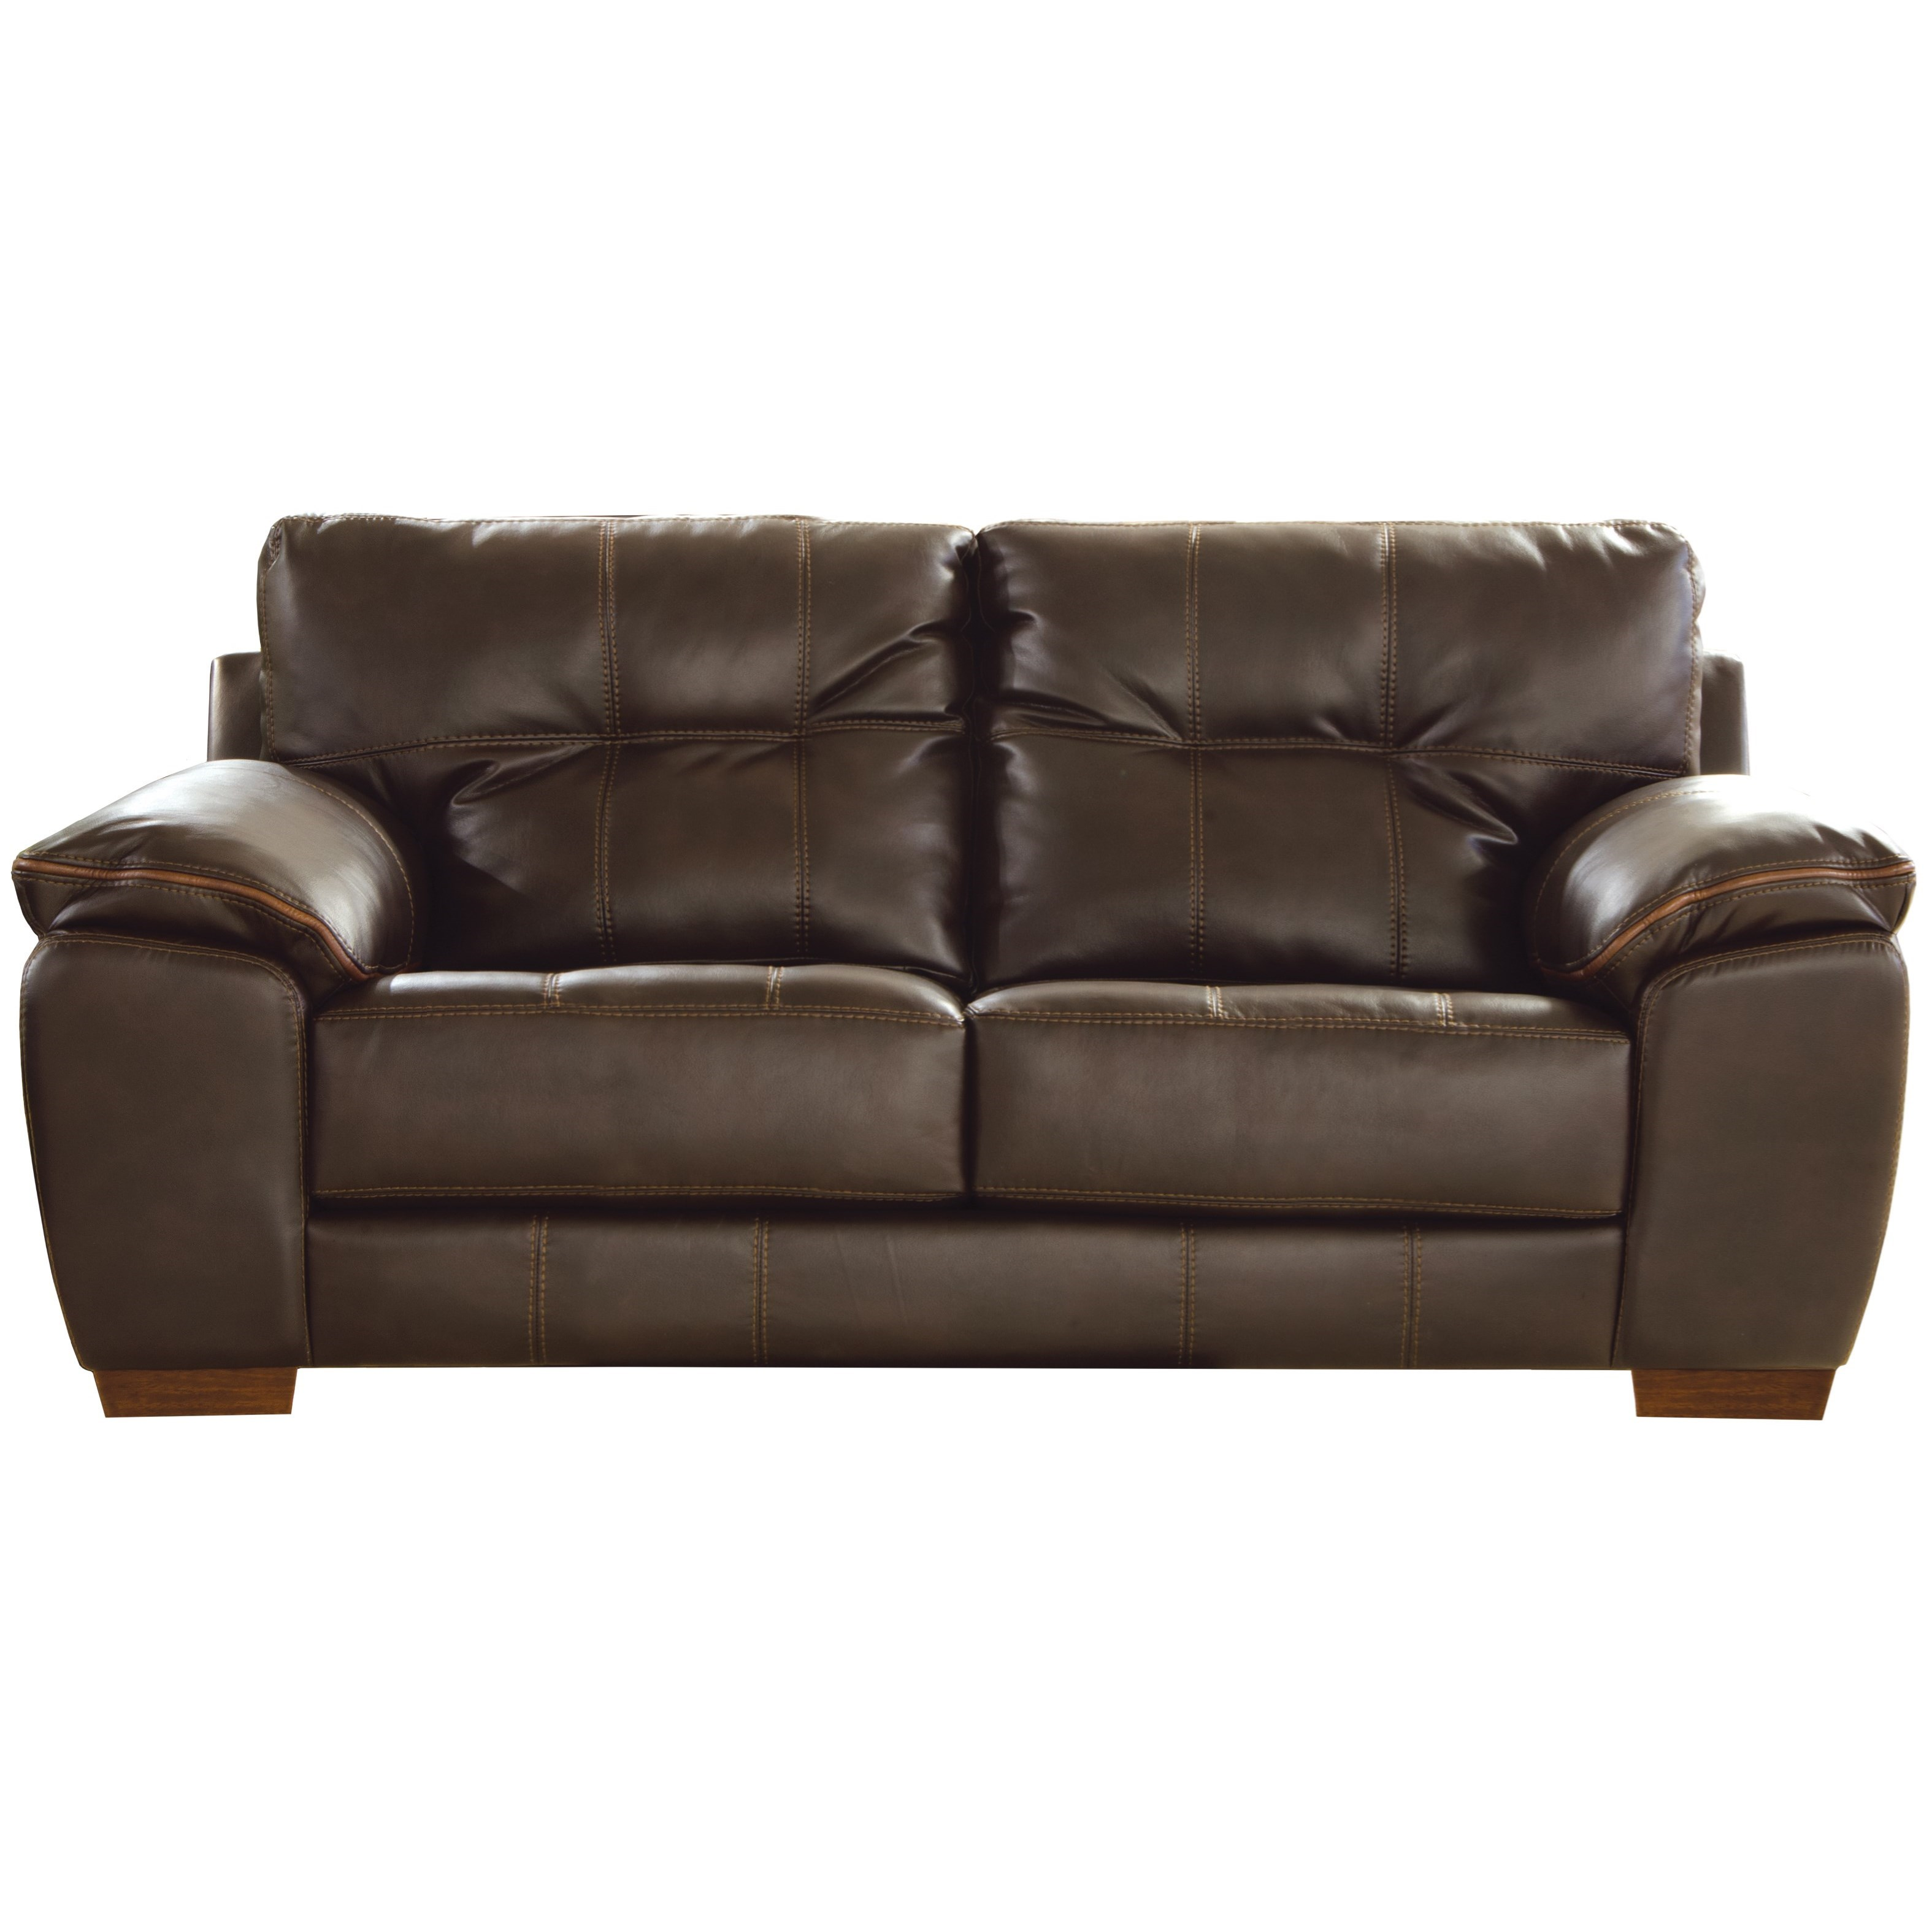 ALLYSON Loveseat by Jackson Furniture at EFO Furniture Outlet